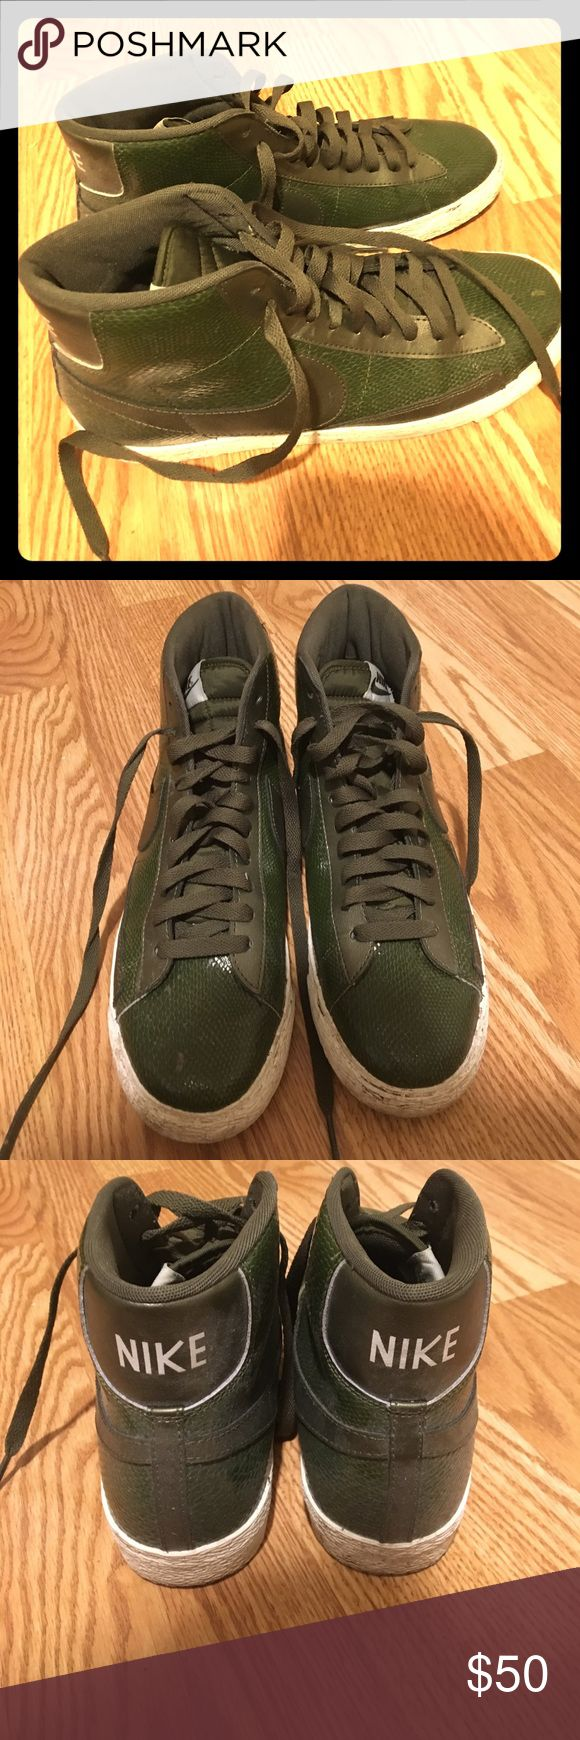 Nike Dunks Nike Dunks, originally $118. Almost like new - worn a few times, but no major damage or dirt. Olive green. Nike Shoes Sneakers